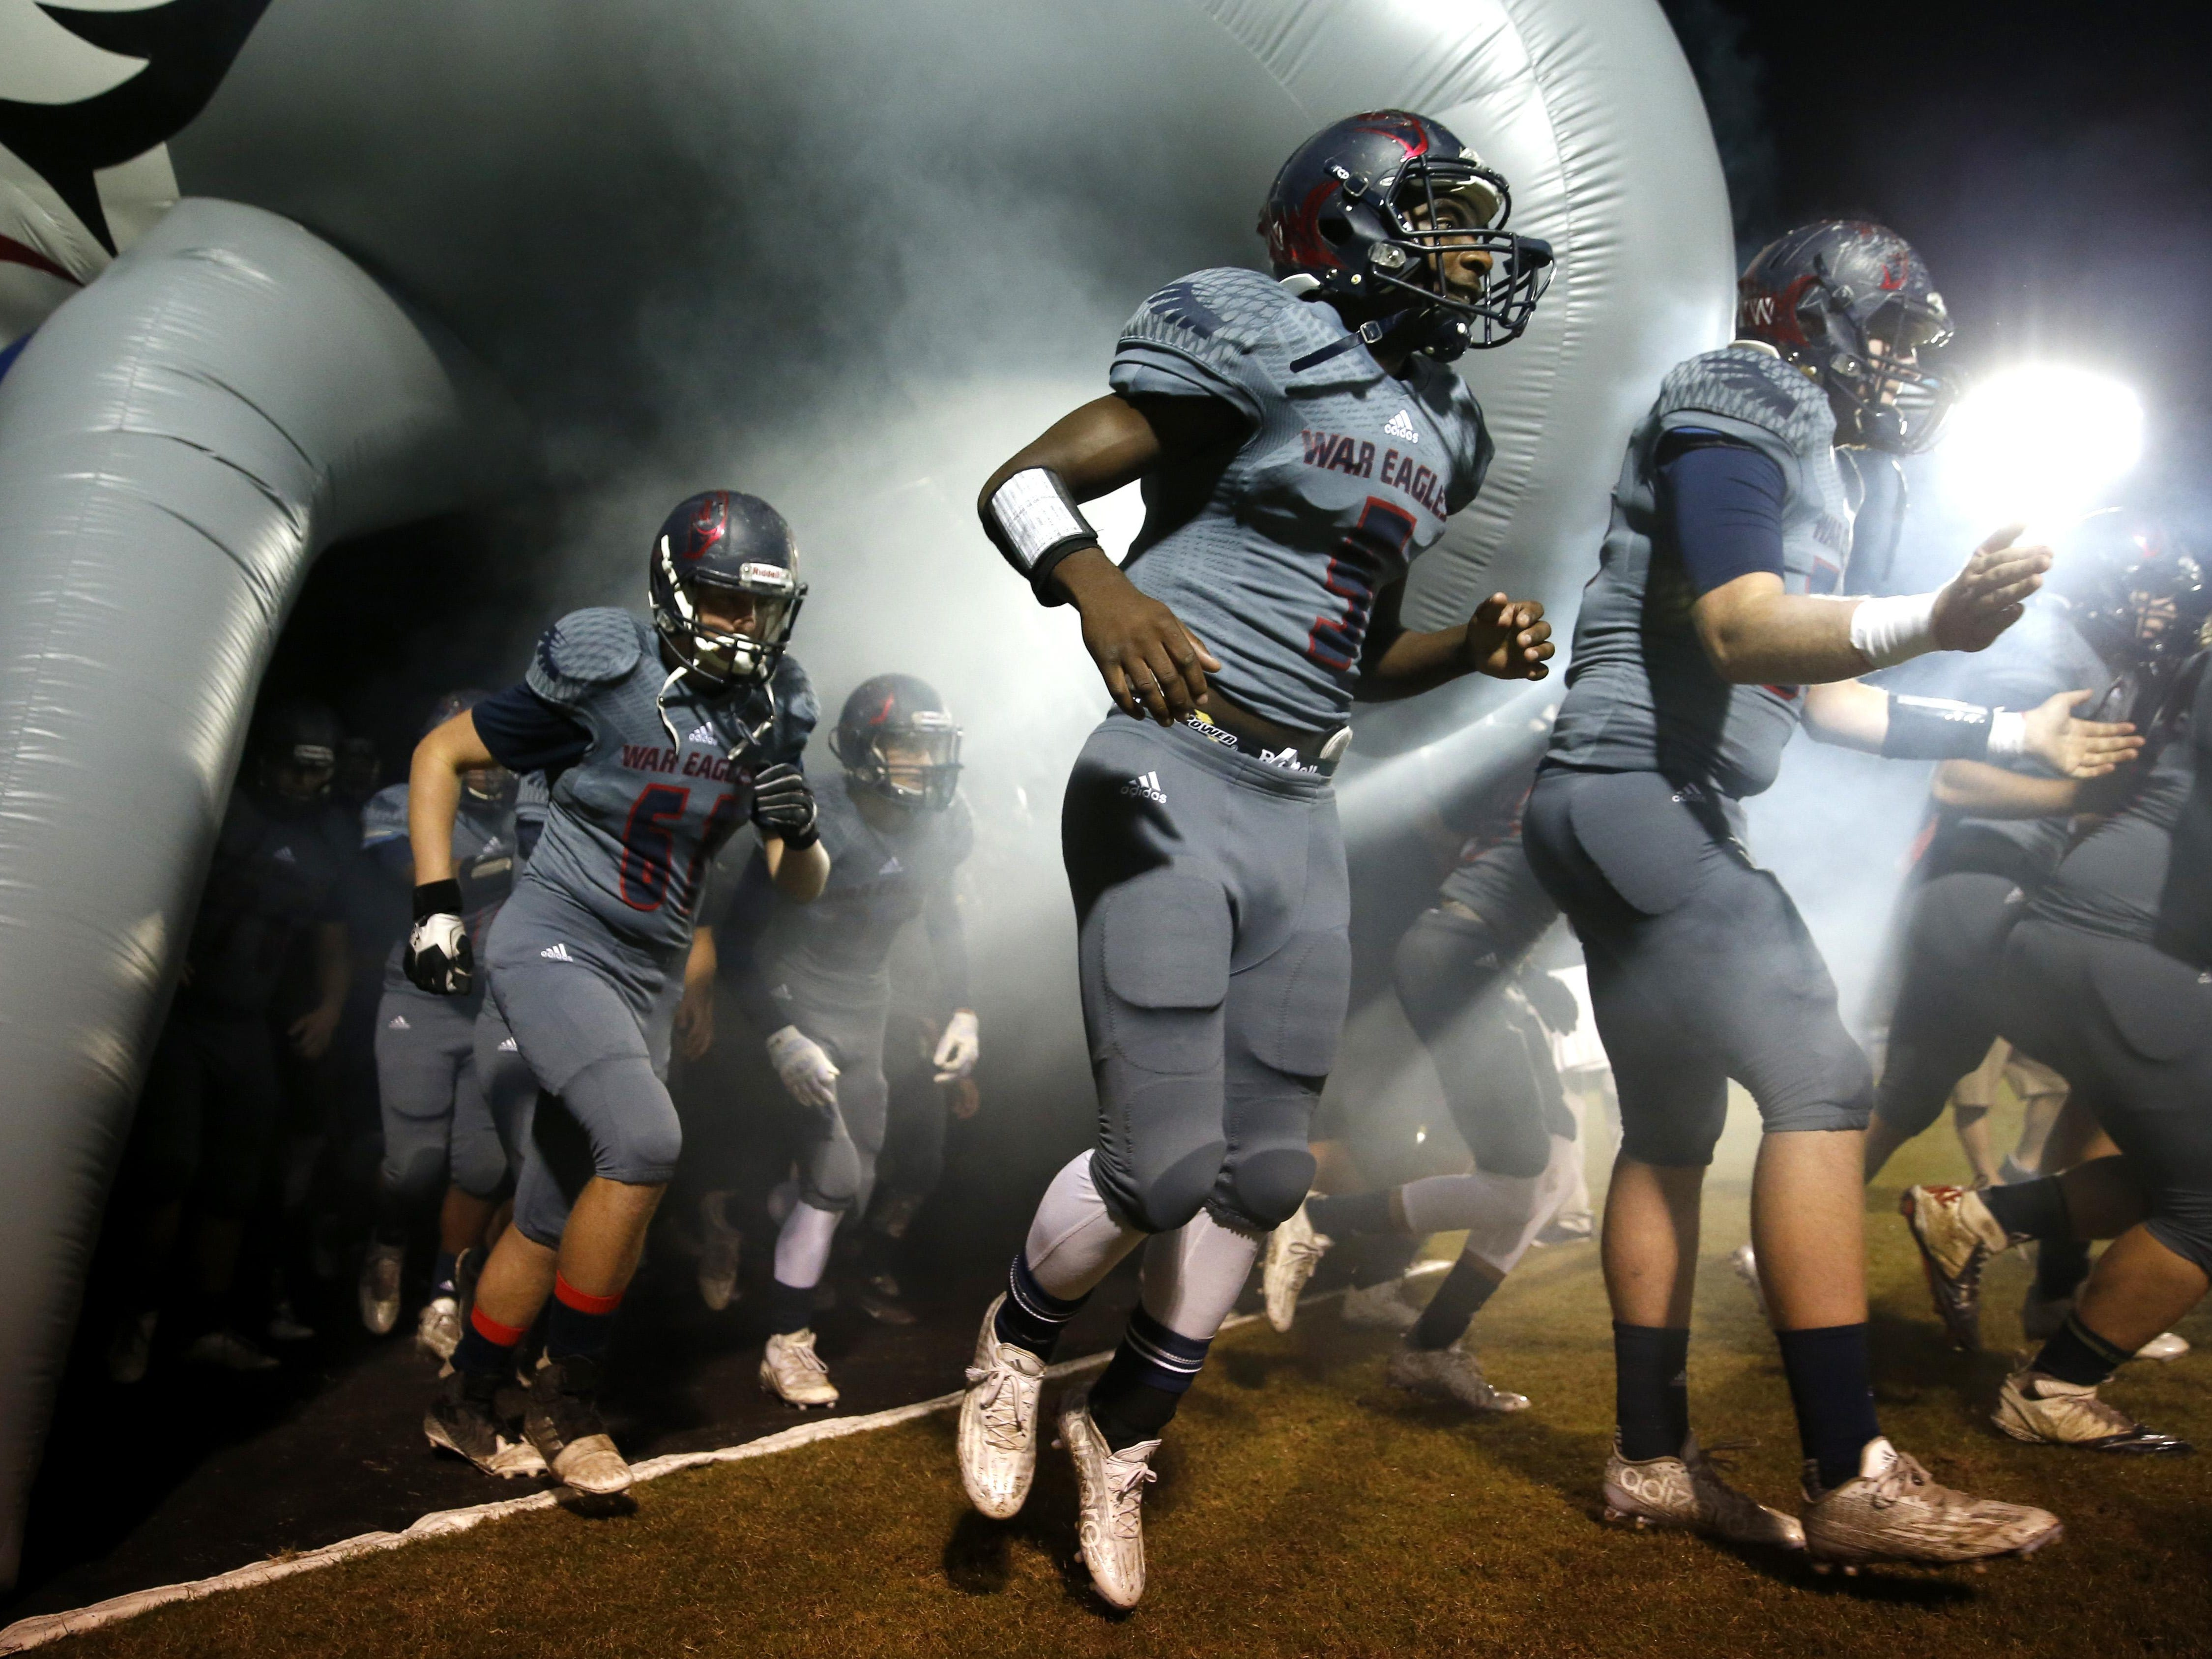 The Wakulla War Eagles charge out on to the field before their playoff game against Rickards in Wakulla on Friday.